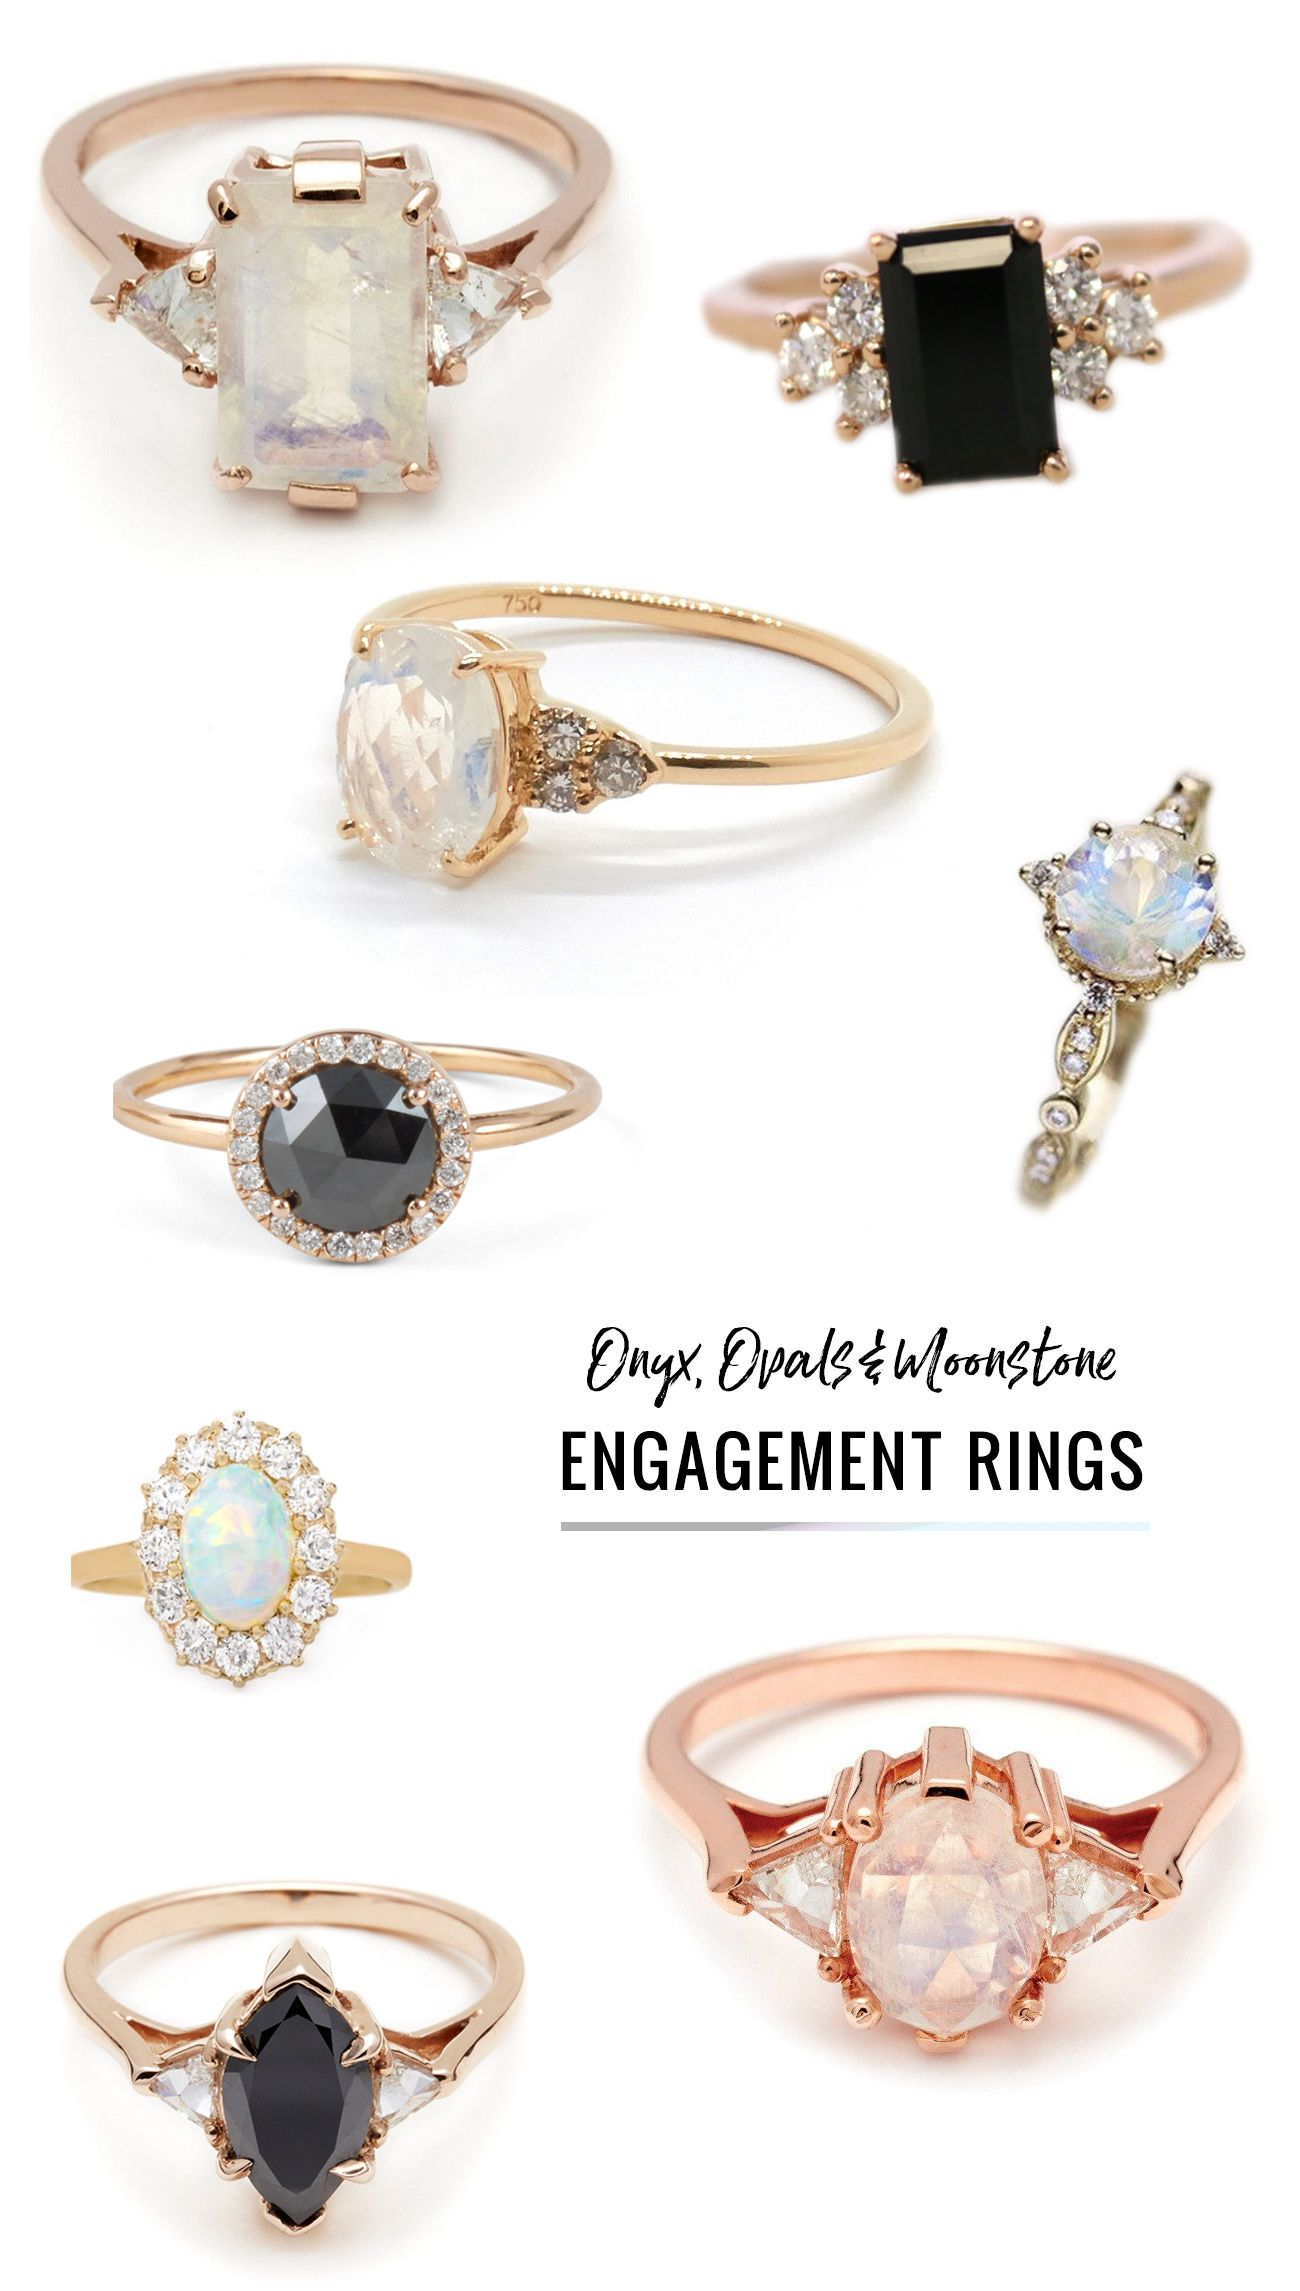 hot grand rings ring a trends queen pink wedding princess gemstones jewelry engaged england gemstone sapphire bridal of peach new daughter engagement and rare is this trend just colored omi with the padparascha eugenie got